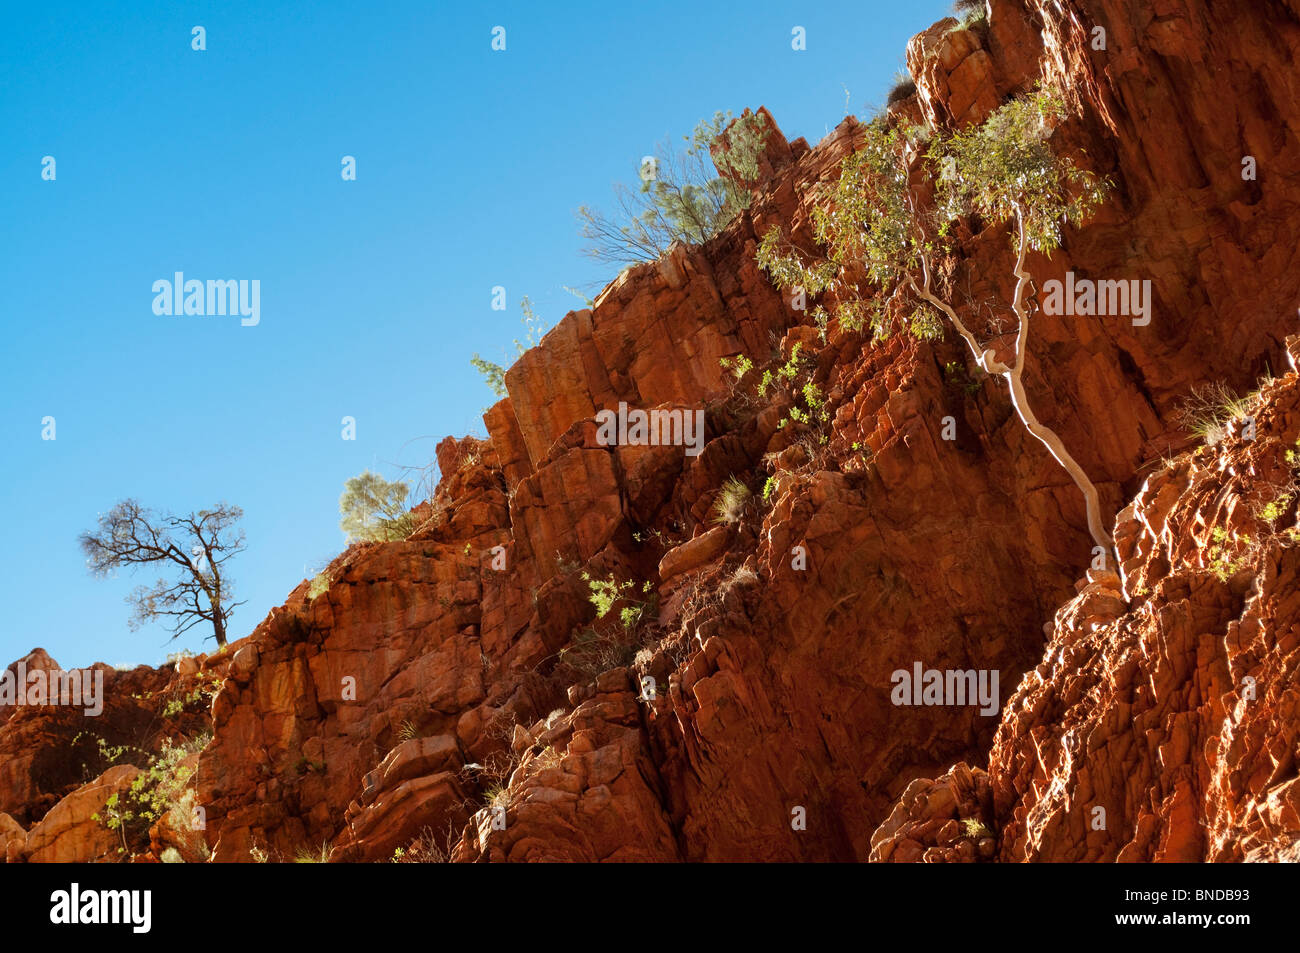 Standley Chasm, West MacDonnell National Park, Northern Territory, Australia - Stock Image